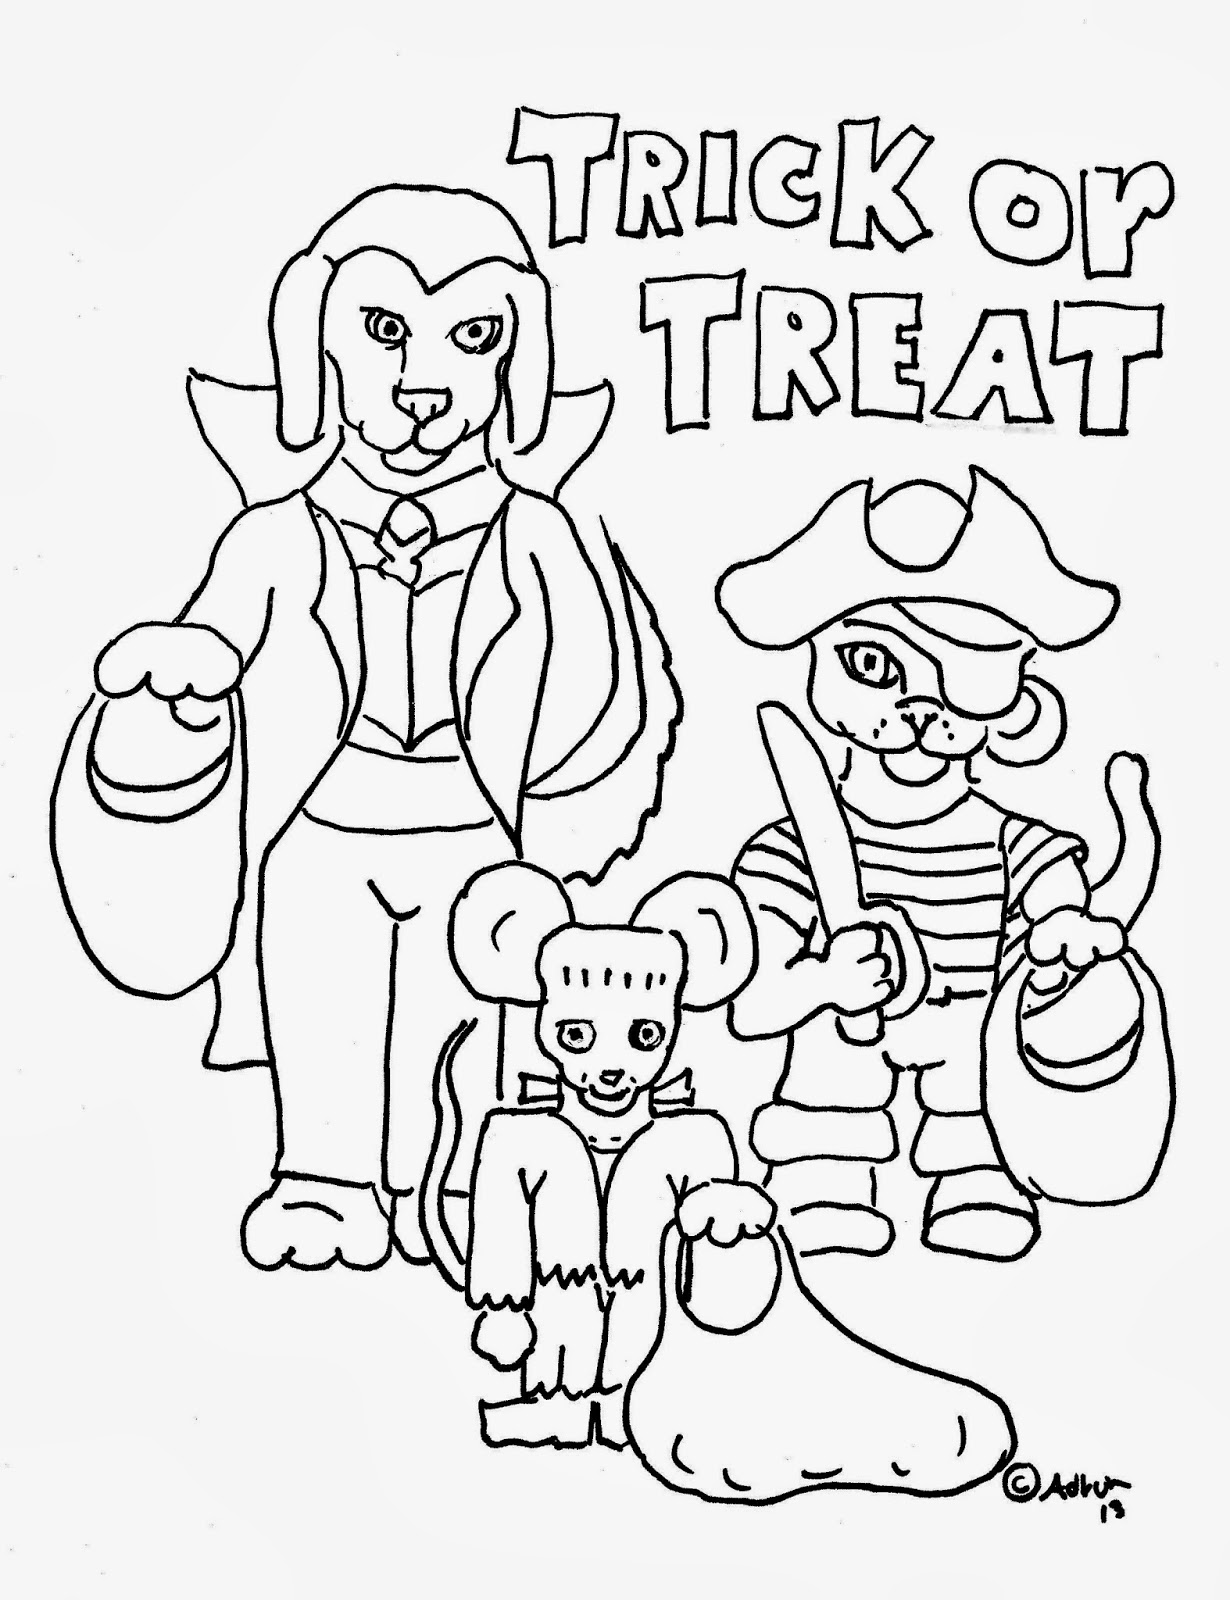 halloween trick or treaters coloring pages | Coloring Pages for Kids by Mr. Adron: Free Trick or Treat ...